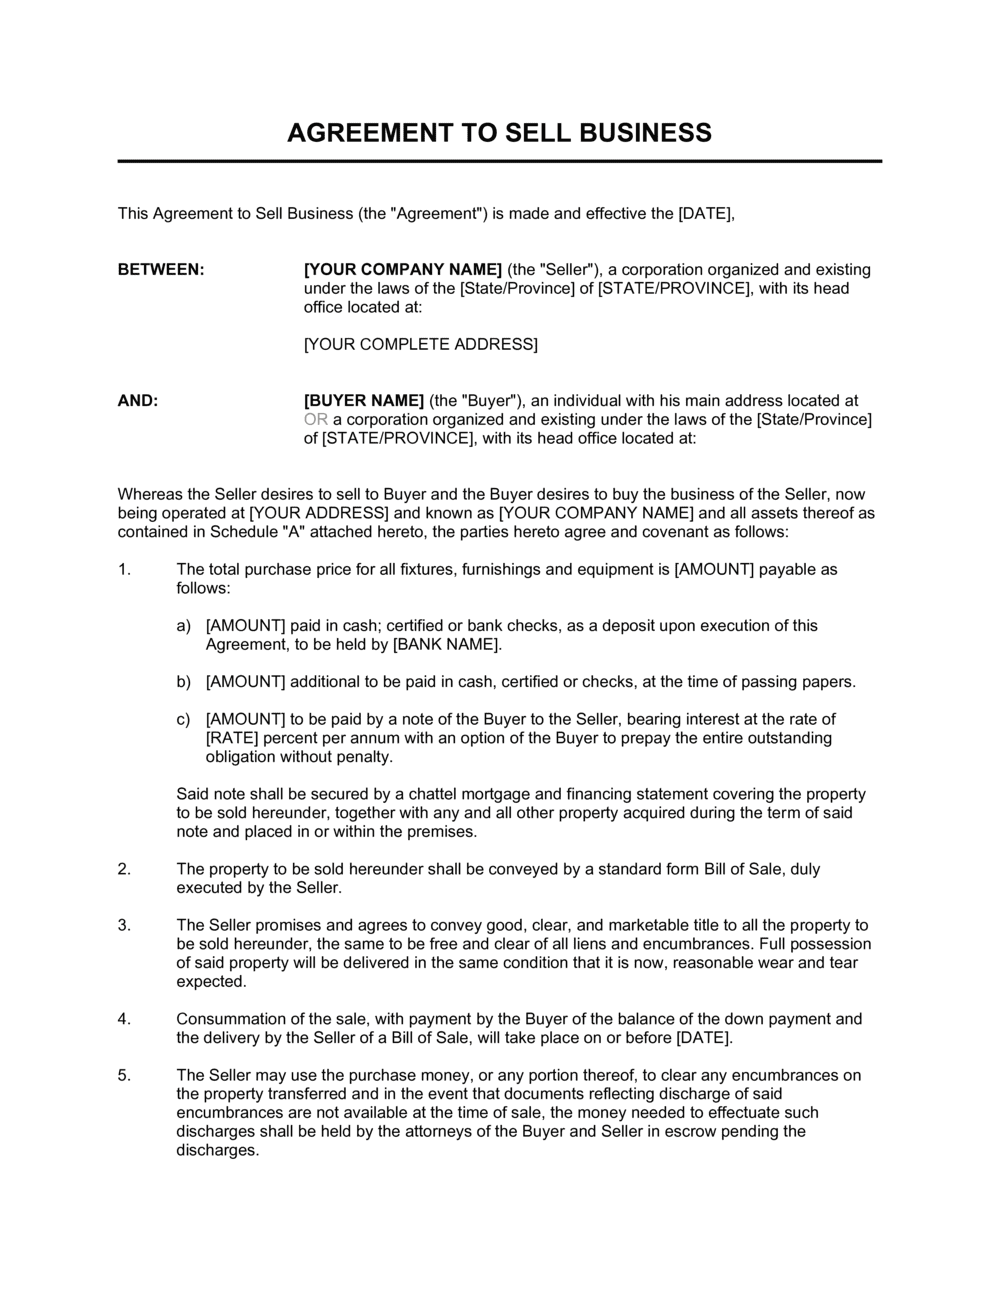 Business-in-a-Box's Agreement of Purchase and Sale of Business Assets Short Template